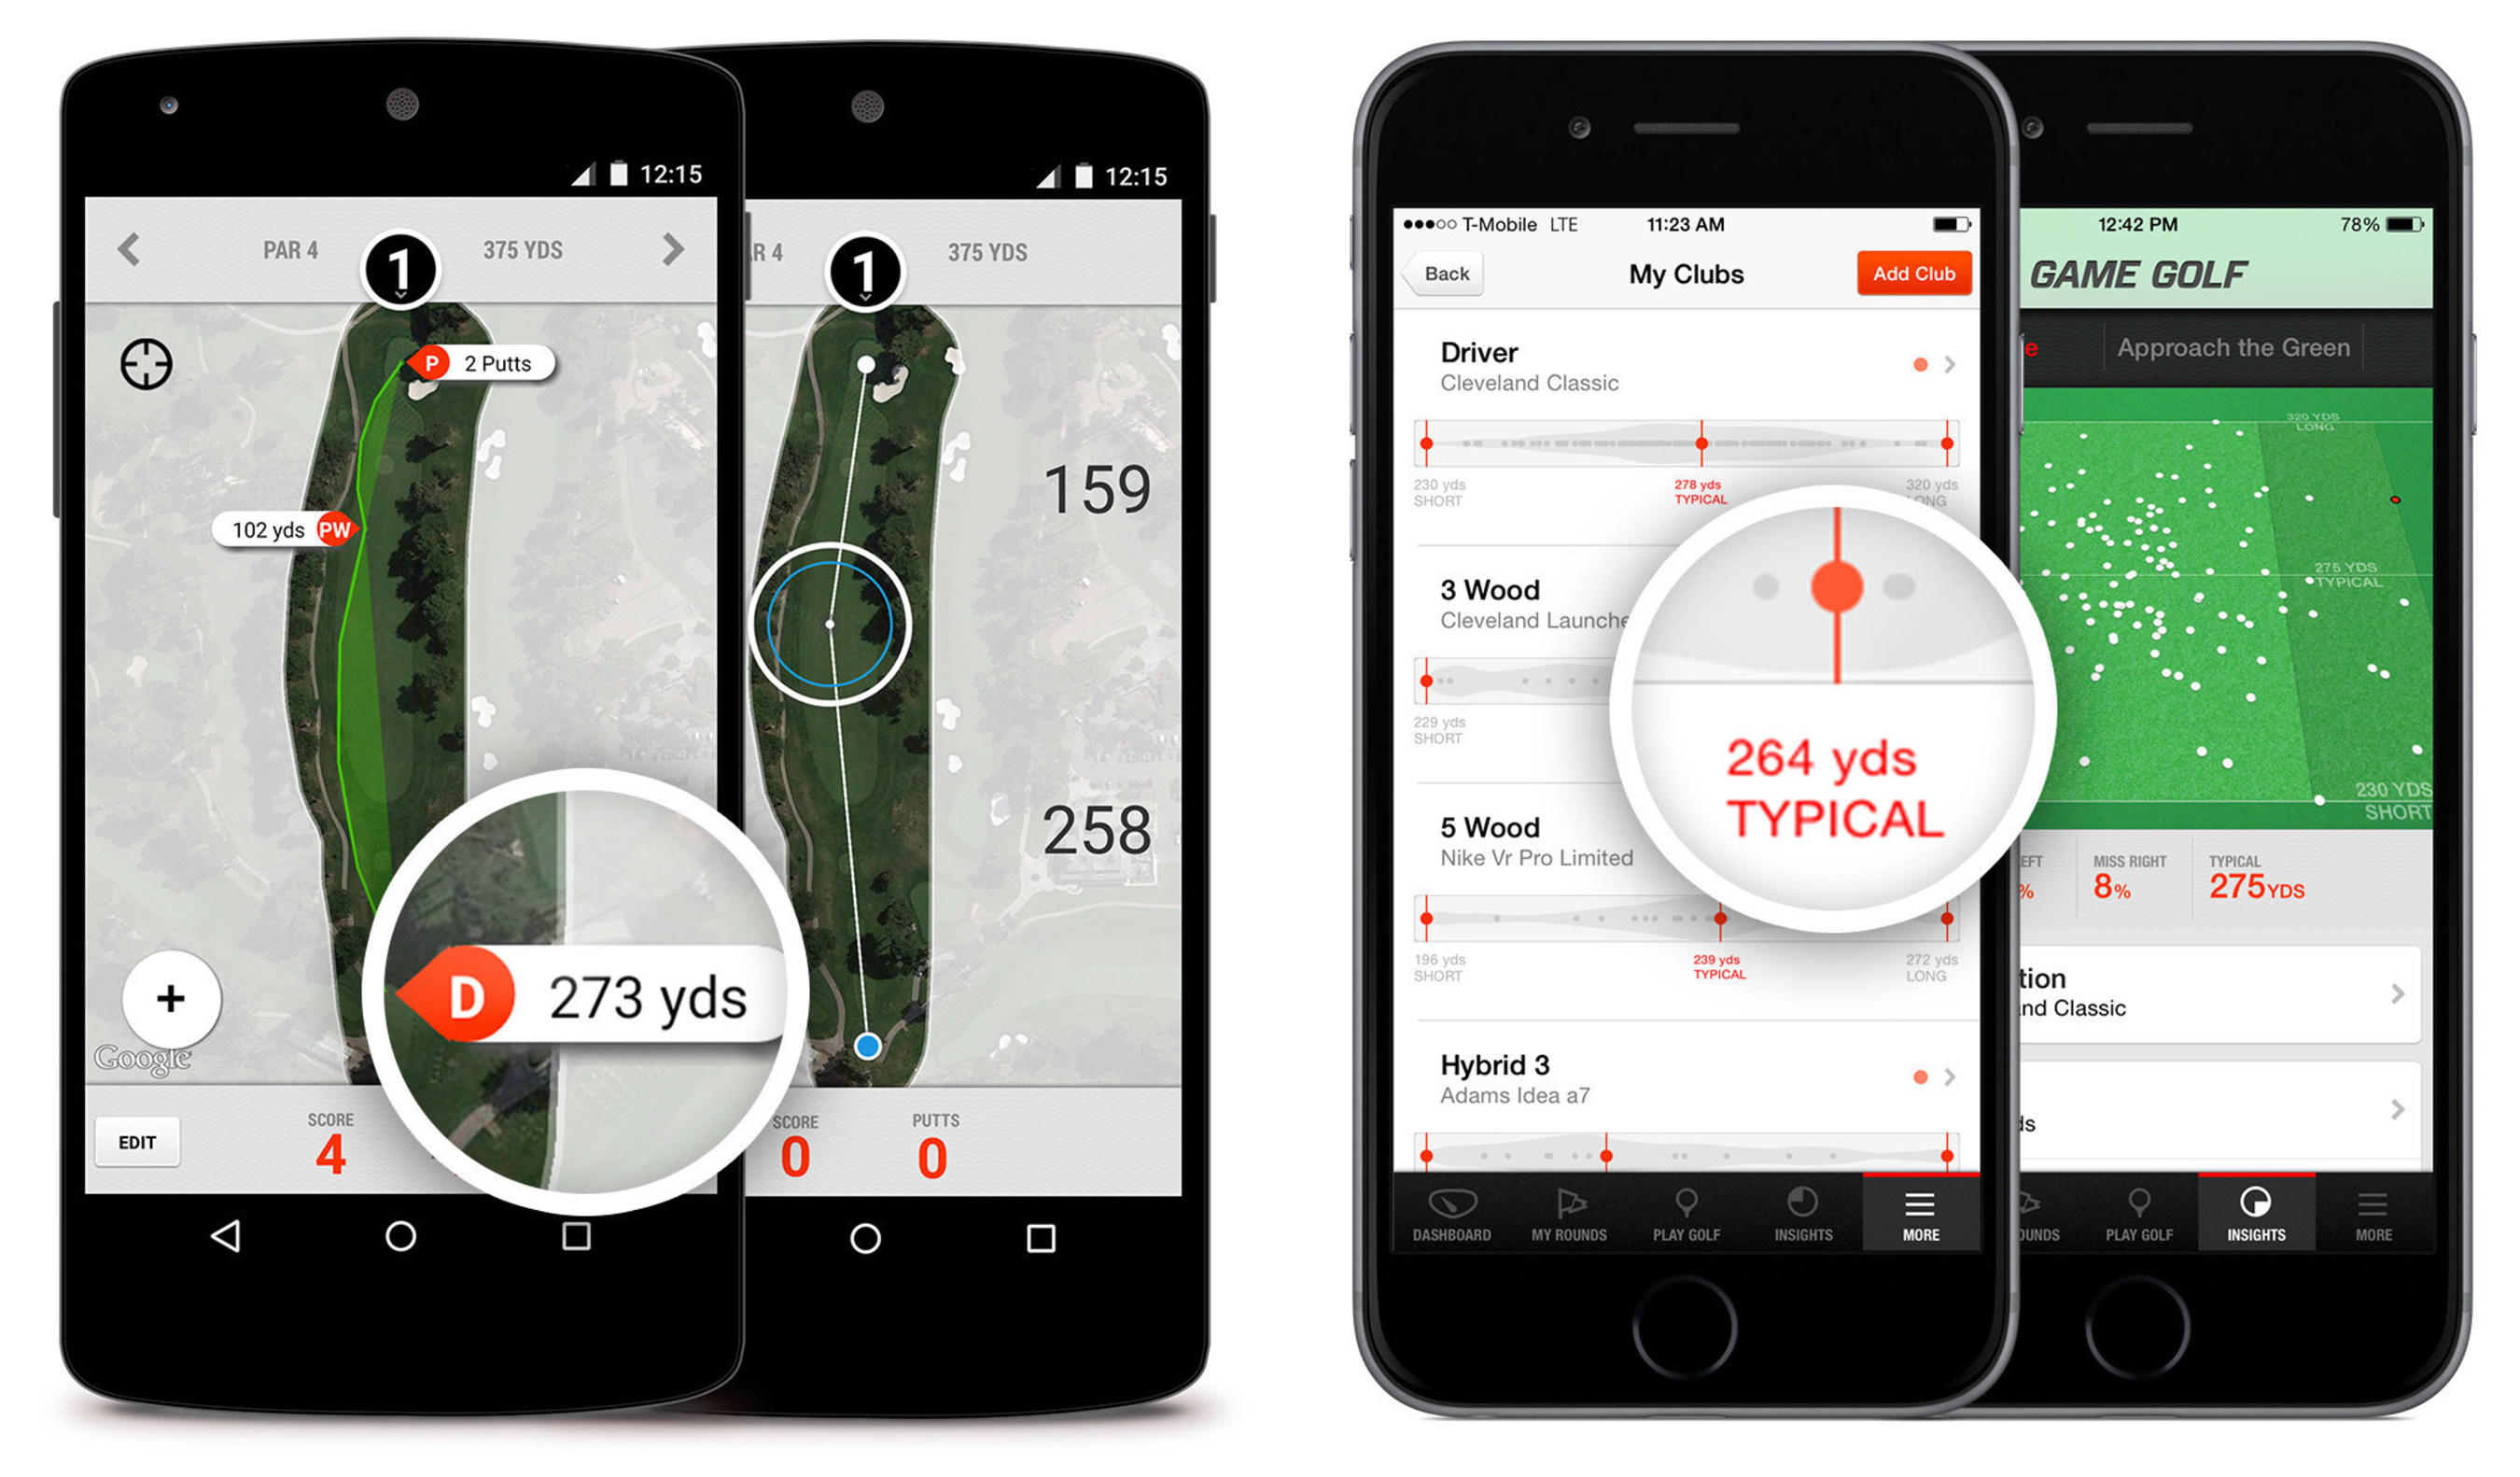 GAME GOLF Launches Free App Featuring Real-Time Shot, Game